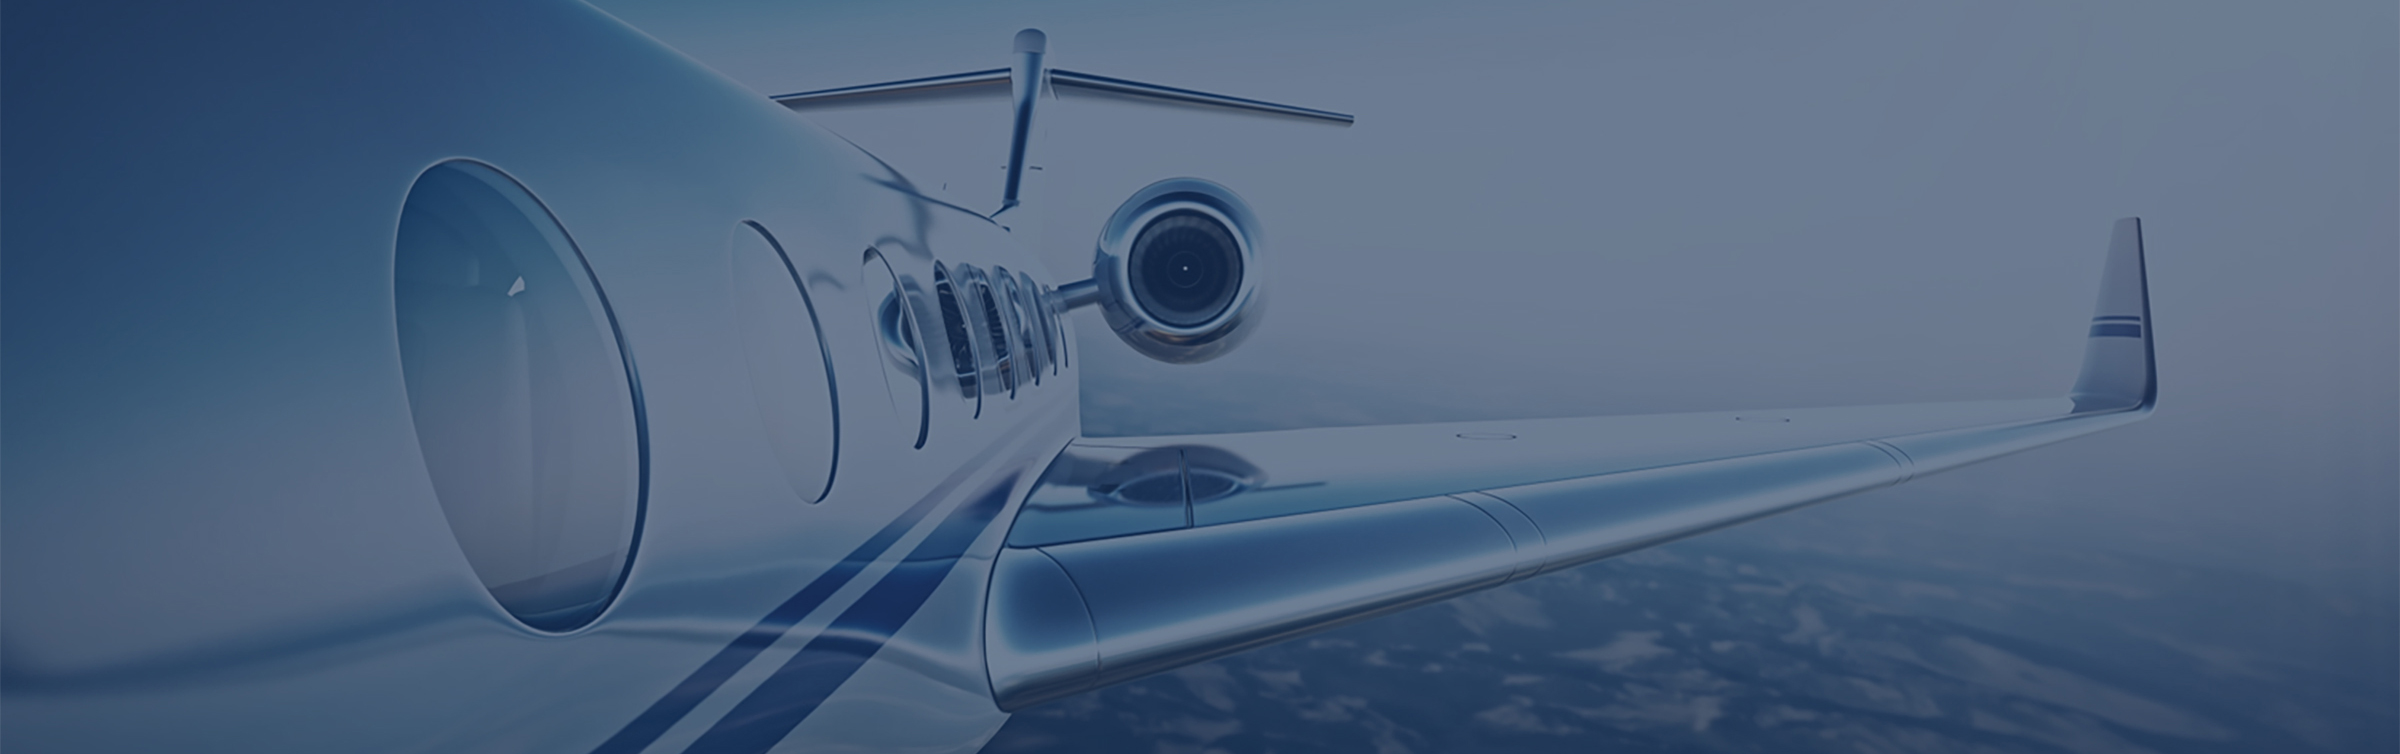 Private Jet Wing